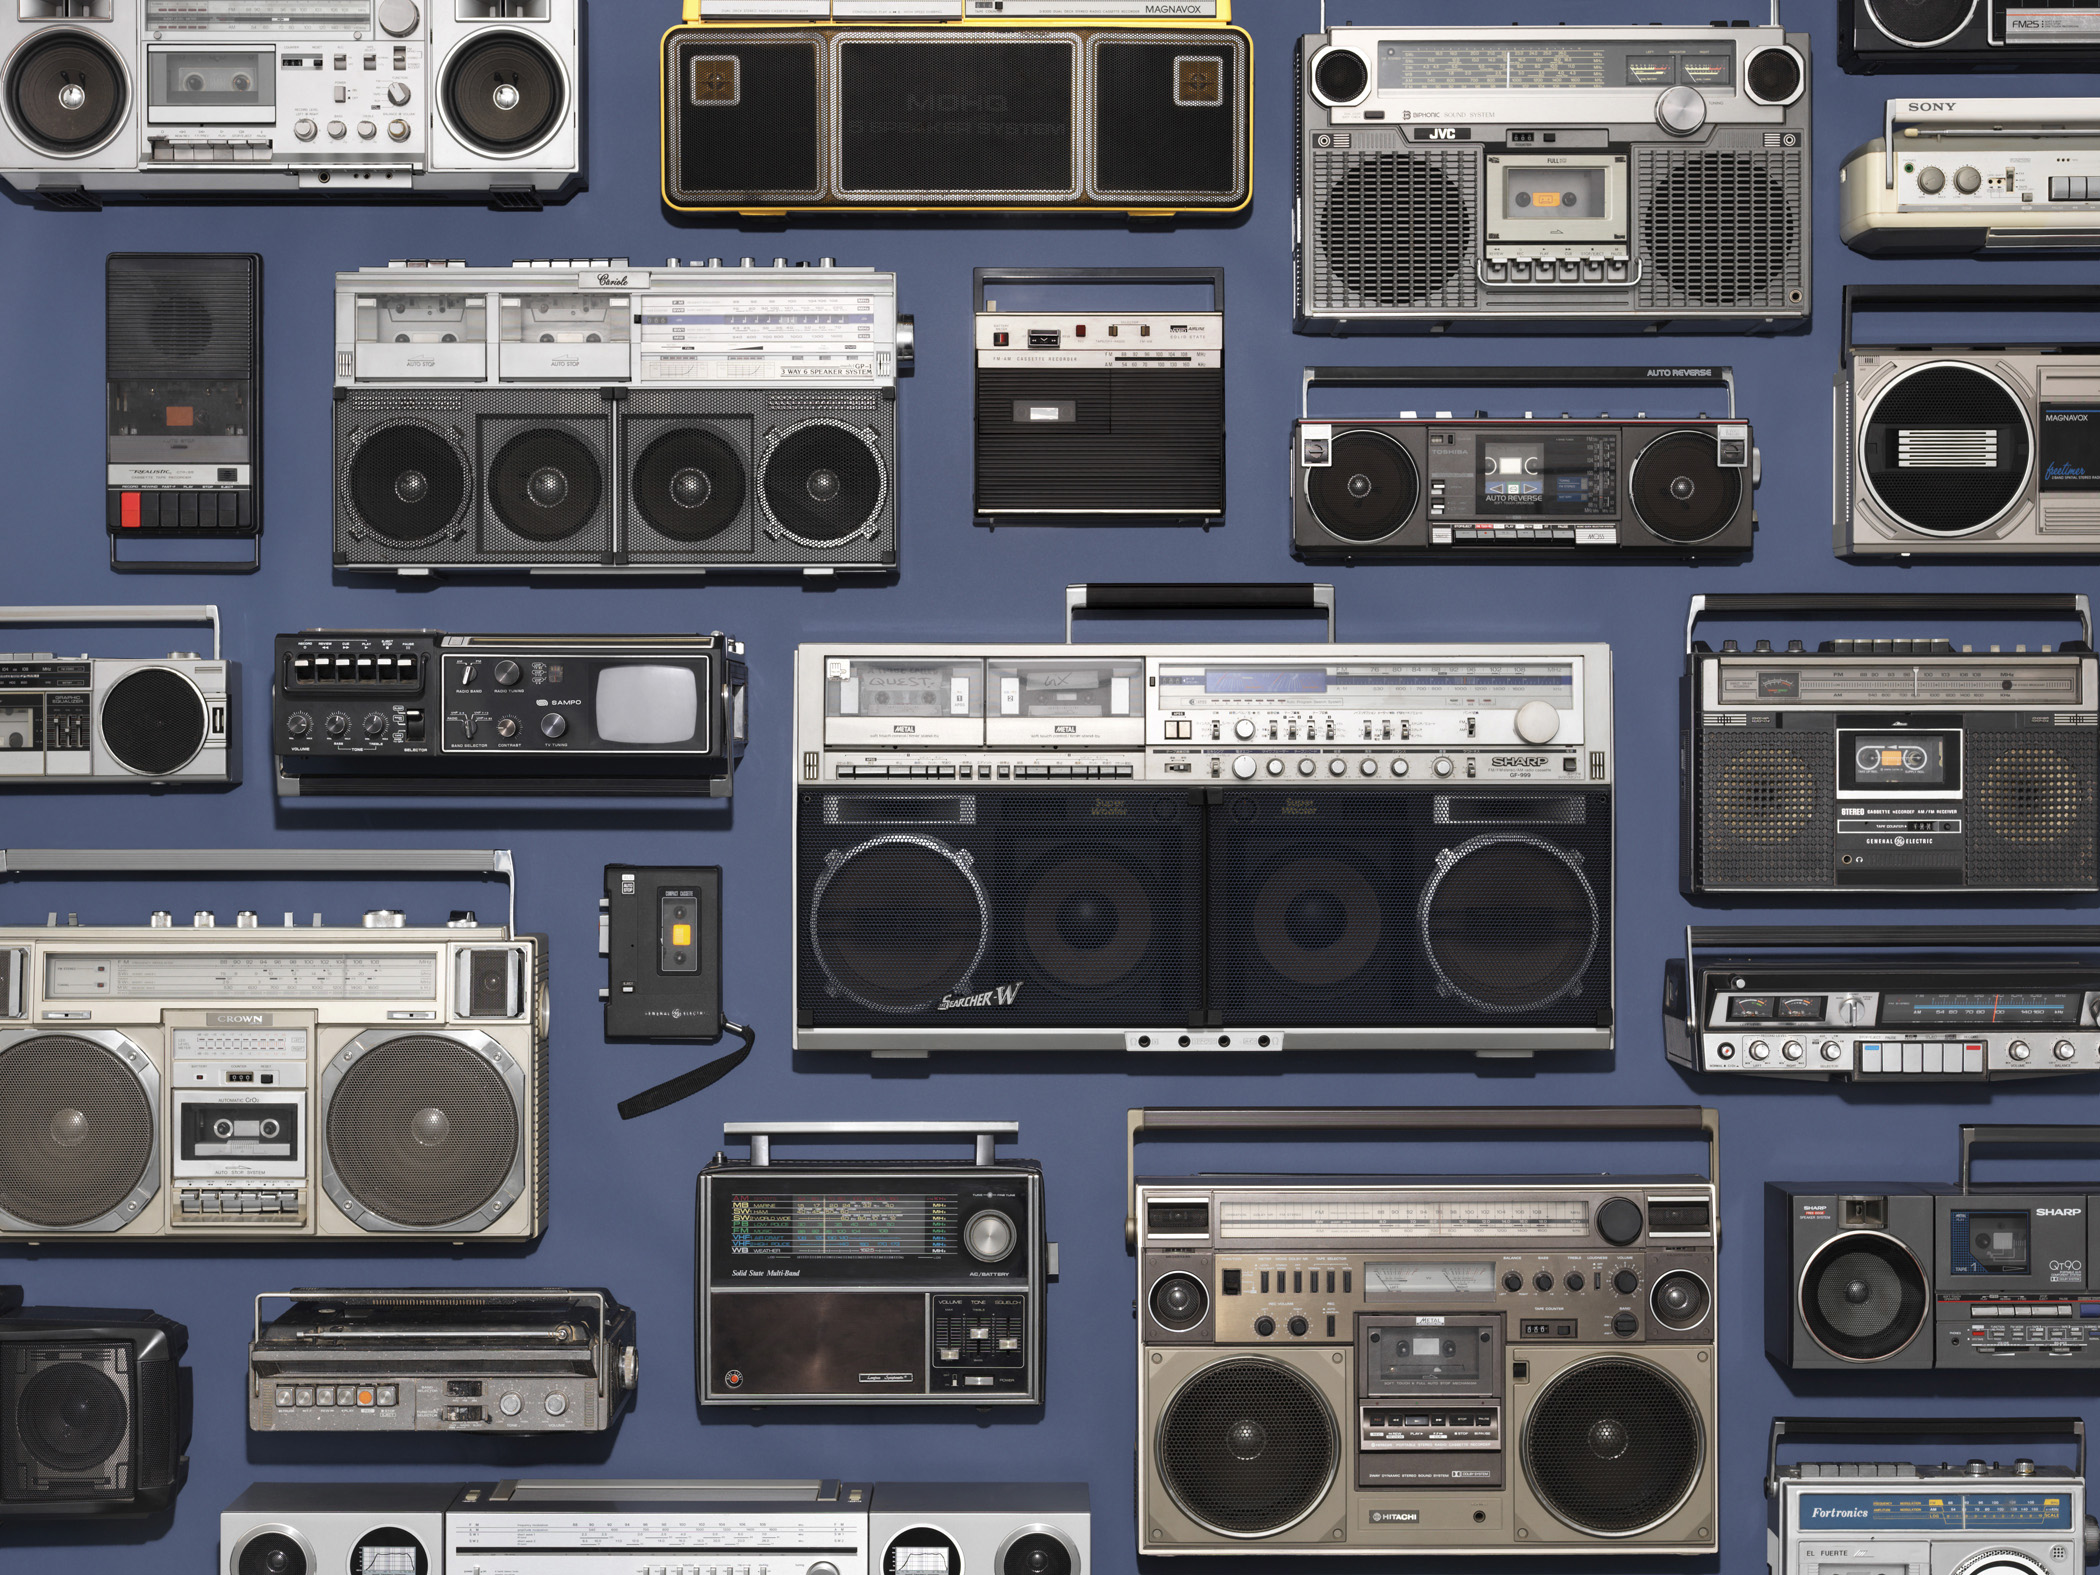 "BoomBox Collection. List Price of 1982 Sanyo model M9901: $80, List Price of 1982 Sony model CFS-45: $140, per <a href=""http://books.google.com/books?id=qwMEAAAAMBAJ&amp;pg=PA34&amp;dq=boom+box+prices&amp;hl=en&amp;sa=X&amp;ei=P0ocVOiSM9WzyATIz4KoDQ&amp;ved=0CD8Q6AEwAQ#v=onepage&amp;q=boom%20box%20prices&amp;f=false"" title=""Kiplinger's Personal Finance"" target=""_blank"">Kiplinger's Personal Finance</a>. <strong>Today's equivalent: </strong> <a href=""http://store.apple.com/us/buy-ipod/ipod-touch"" title=""iPod Touch 16GB"" target=""_blank"">iPod Touch 16 GB</a> pocket-size media player (List Price: $199) available online at <a href=""http://store.apple.com/"" title=""The Apple Store"" target=""_blank"">the Apple Store</a> and <strong><a href=""http://store.apple.com/us/product/H7423LL/A/big-jambox-by-jawbone-wireless-speaker"" title=""Big JAMBOX Wireless Speaker by Jawbone"" target=""_blank"">Big JAMBOX Wireless Speaker by Jawbone</a></strong> (List Price: $299.95)."